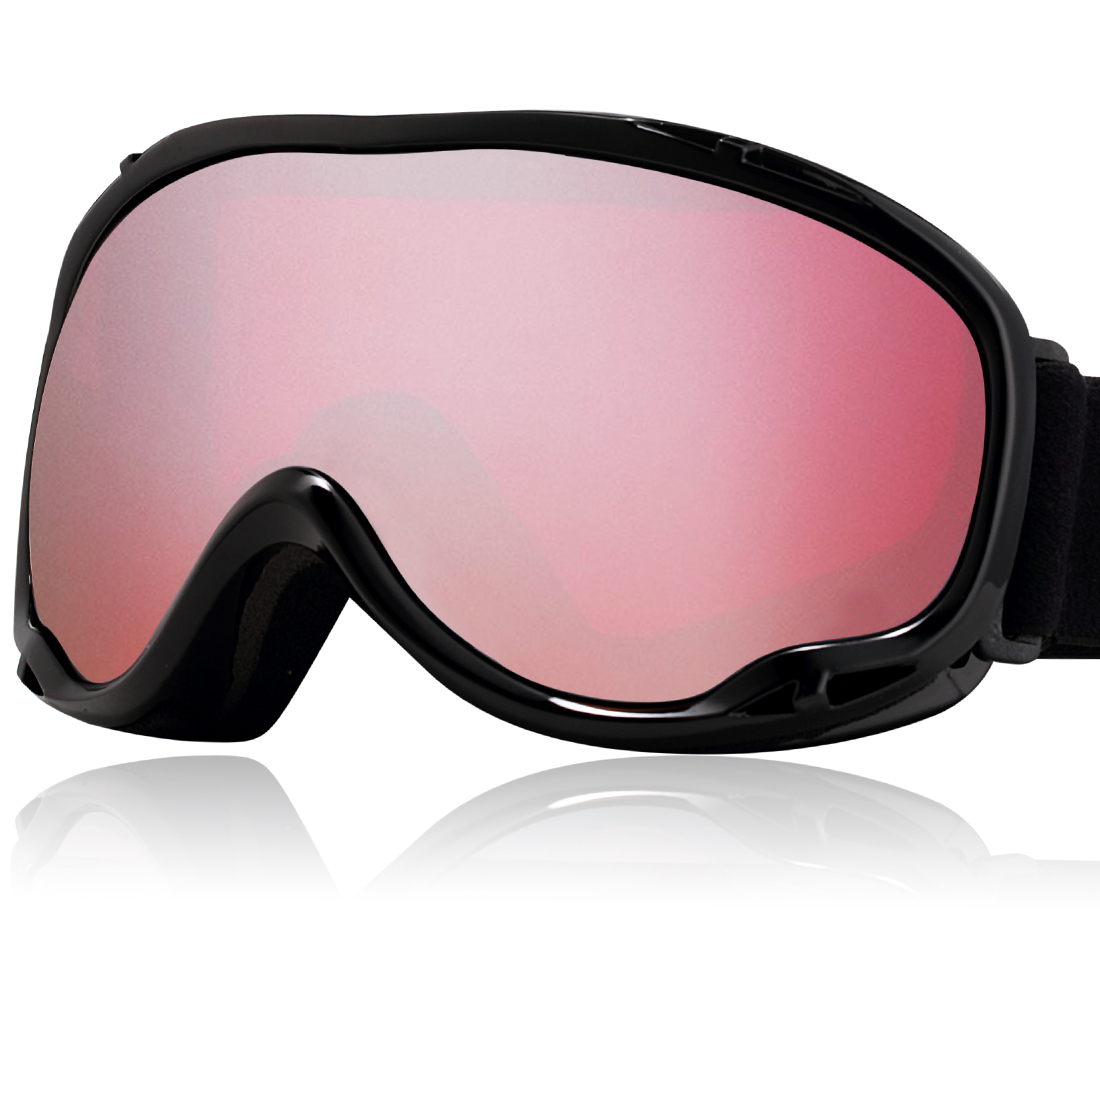 Uxcell Ski Snowboard Goggles UV400 Protect Anti-fog Glasses Men Women by